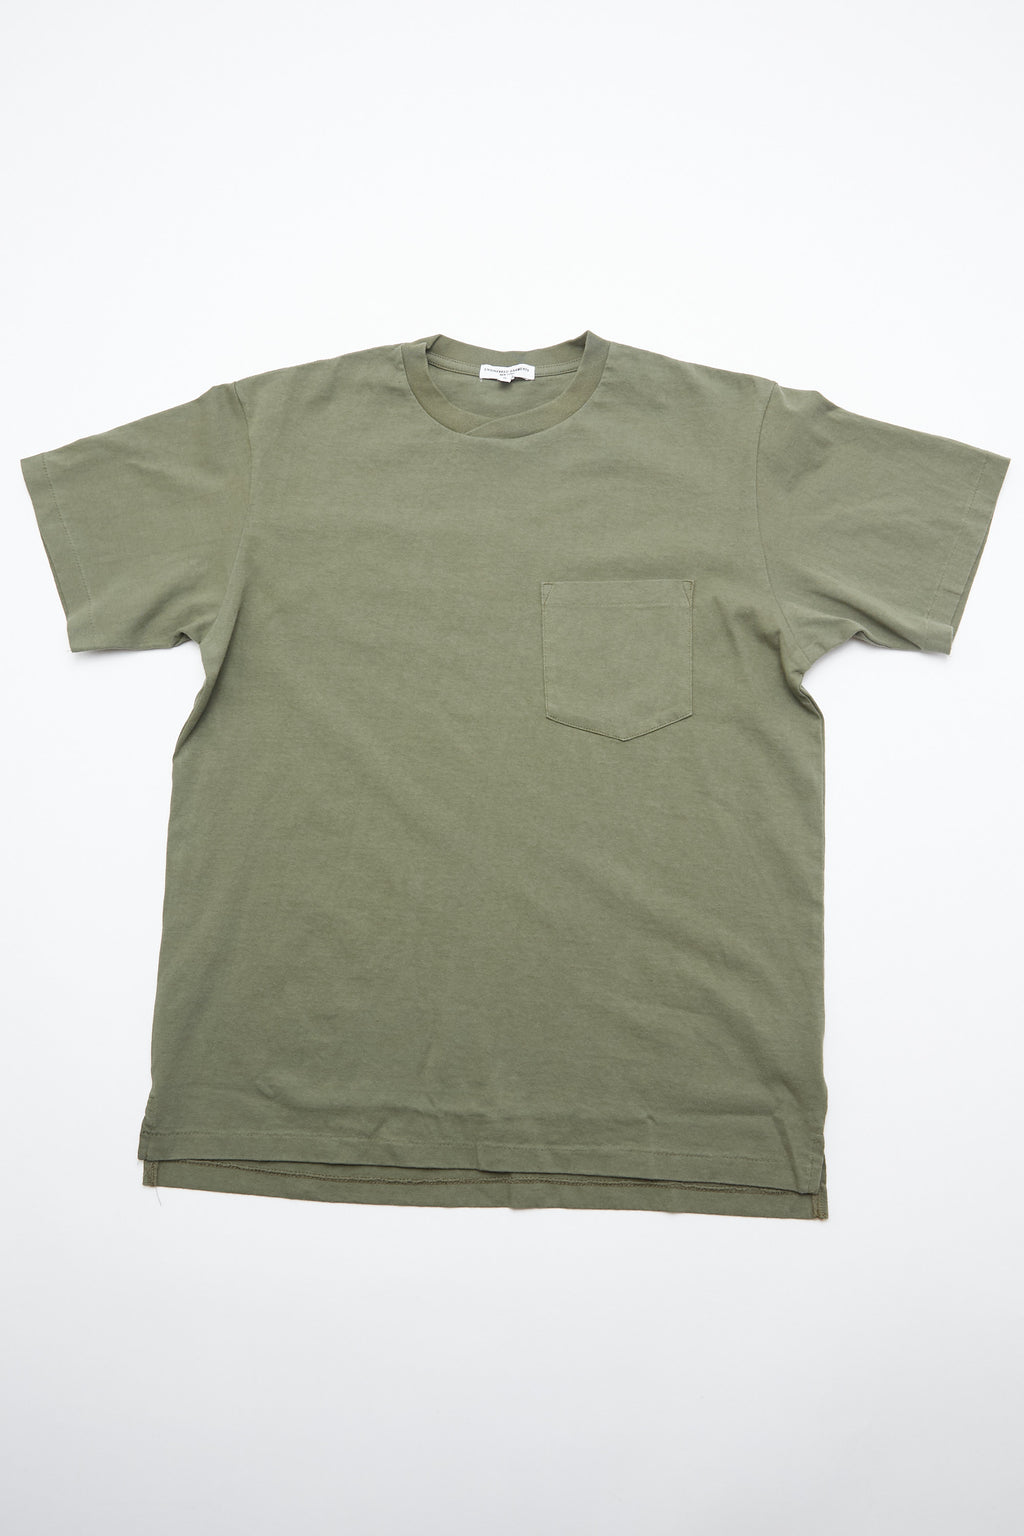 Engineered Garments Plain Cross Crew Neck T-Shirt - Olive